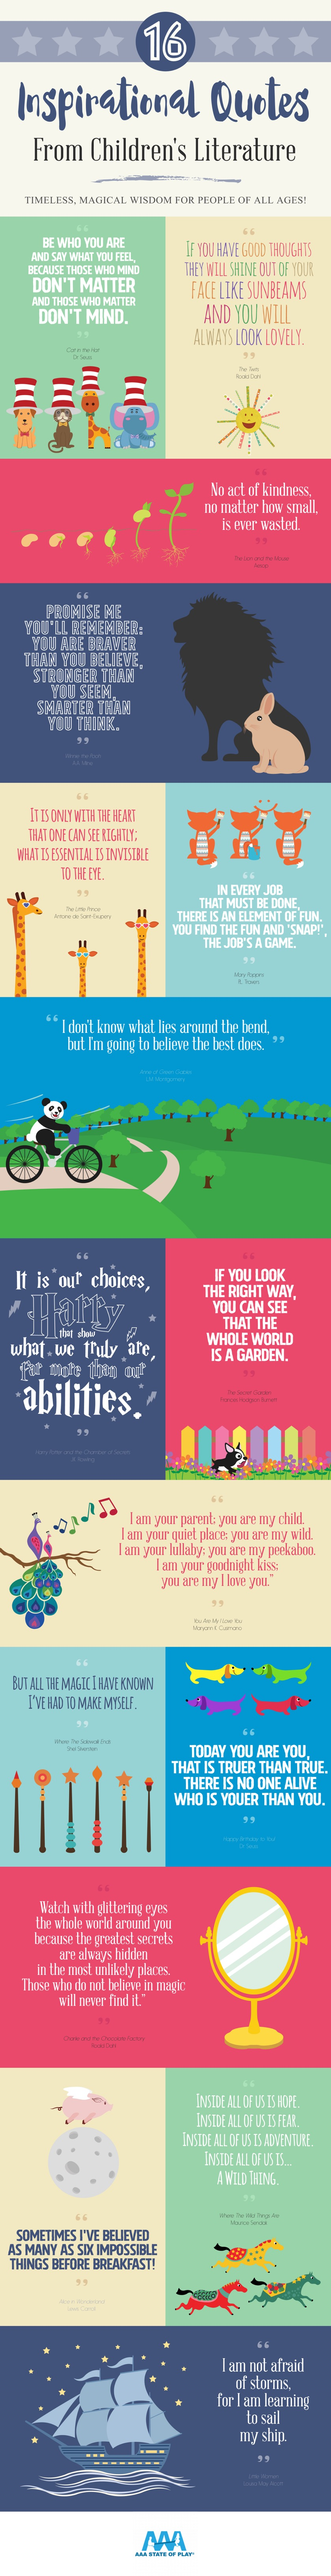 inspirational quotes from children s books infographic